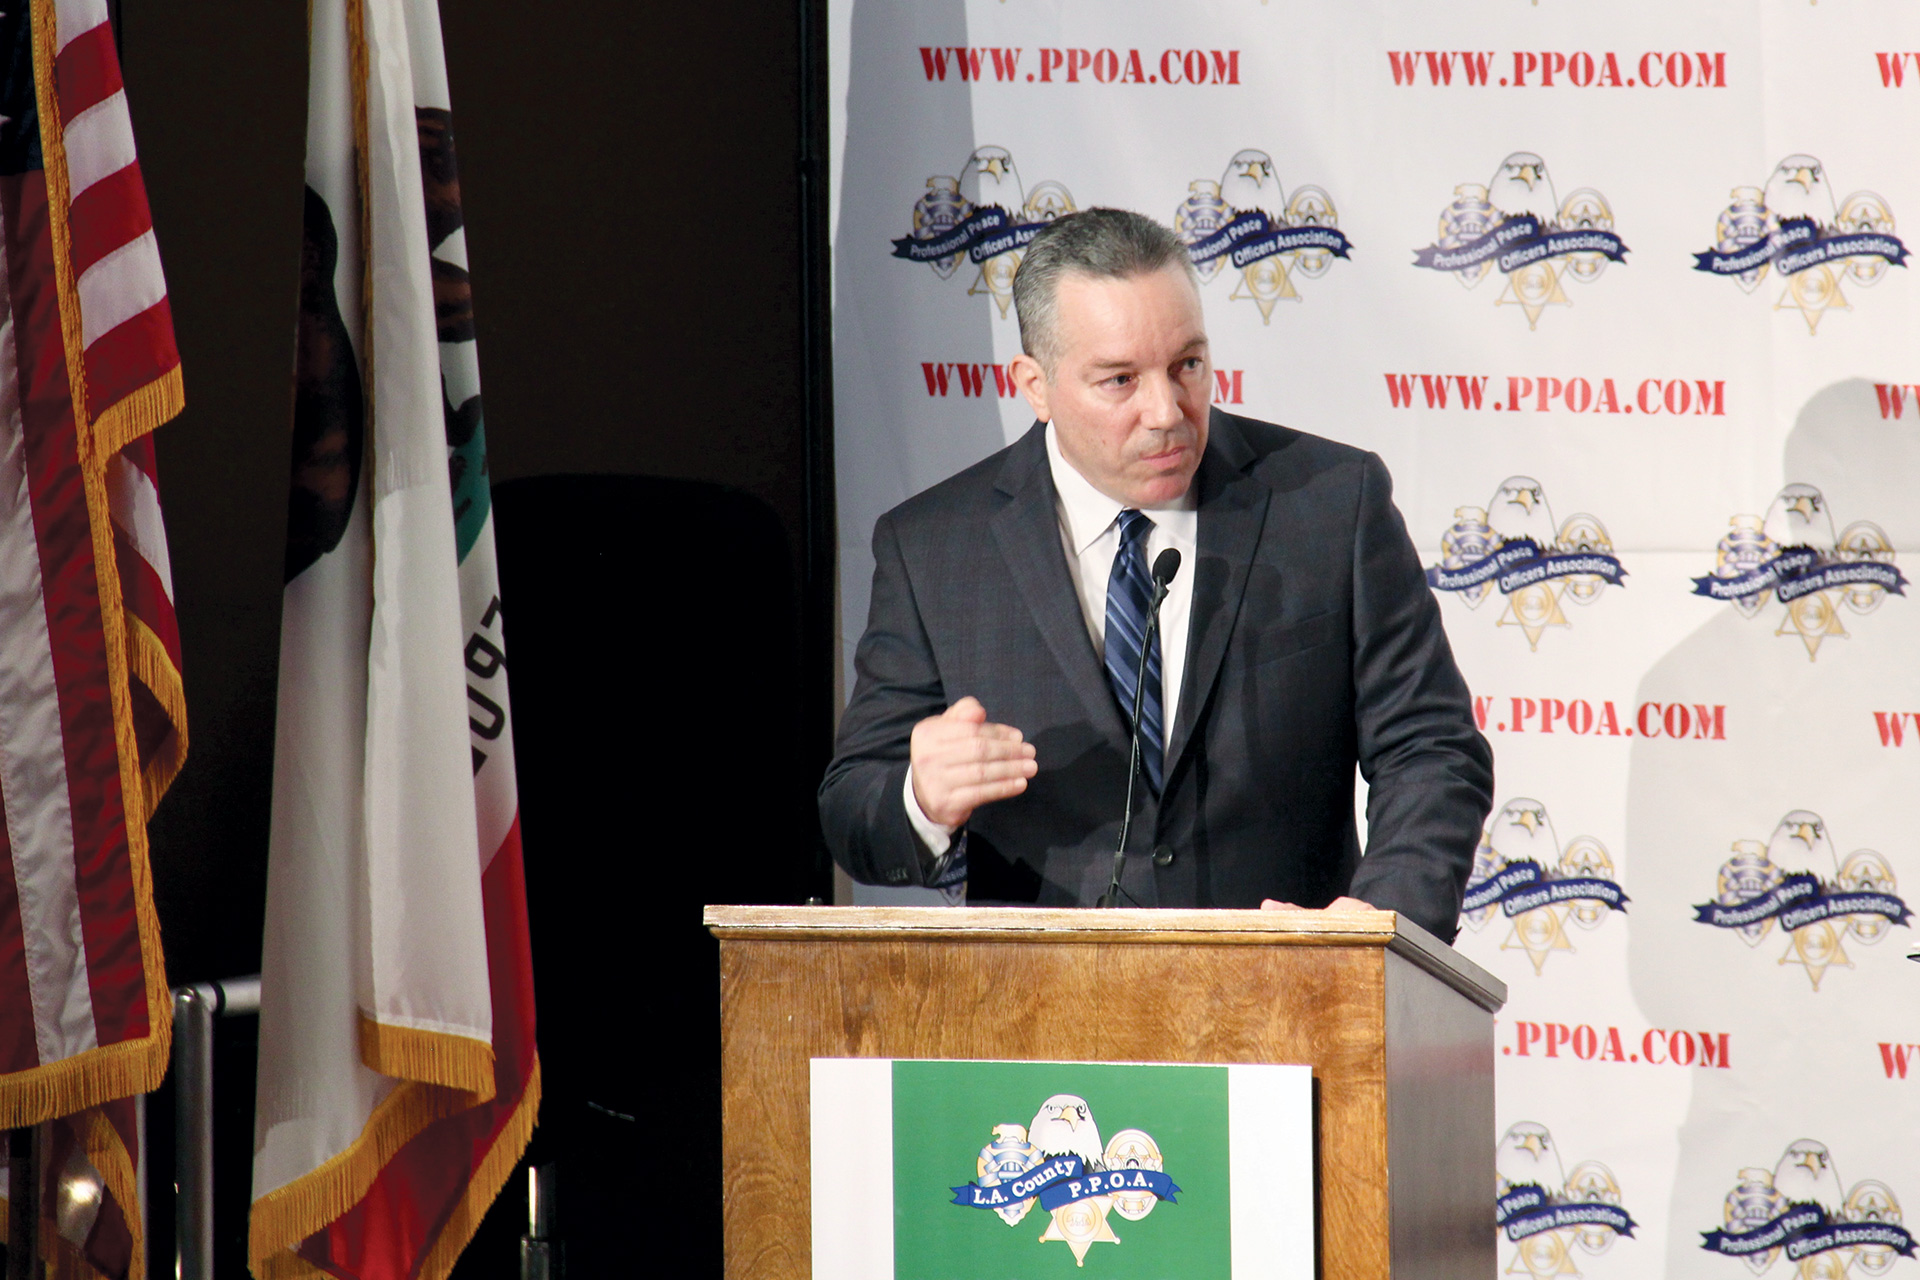 l-a-county-sheriff-debate-hosted-by-ppoa-4